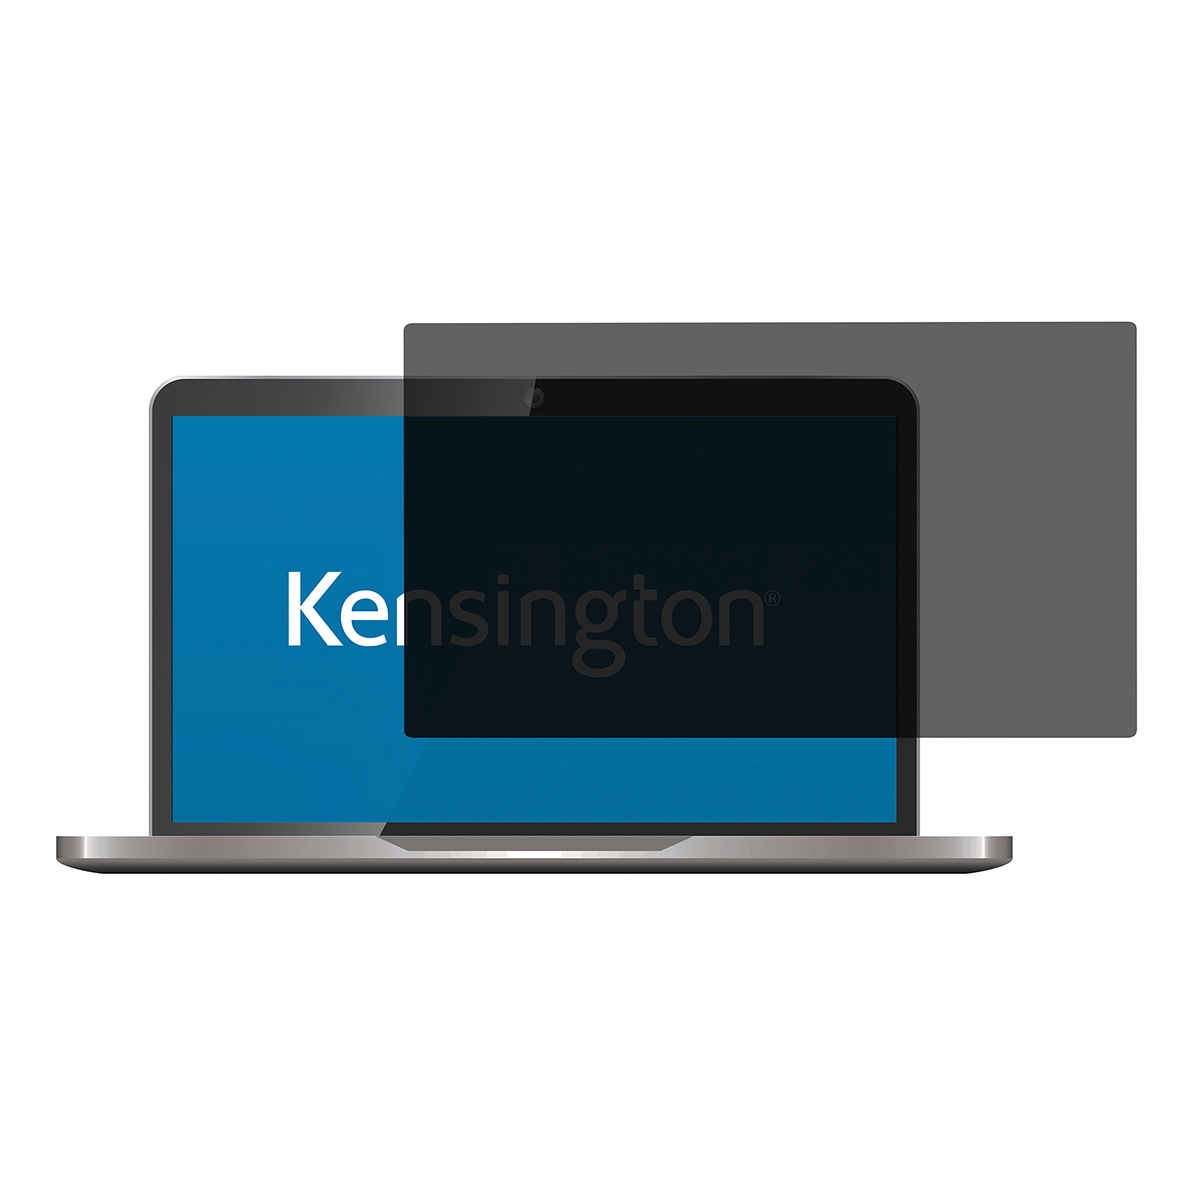 Kensington 626376 Privacy Filter 2 Way Adhesive for Dell XPS 13 inch 9360